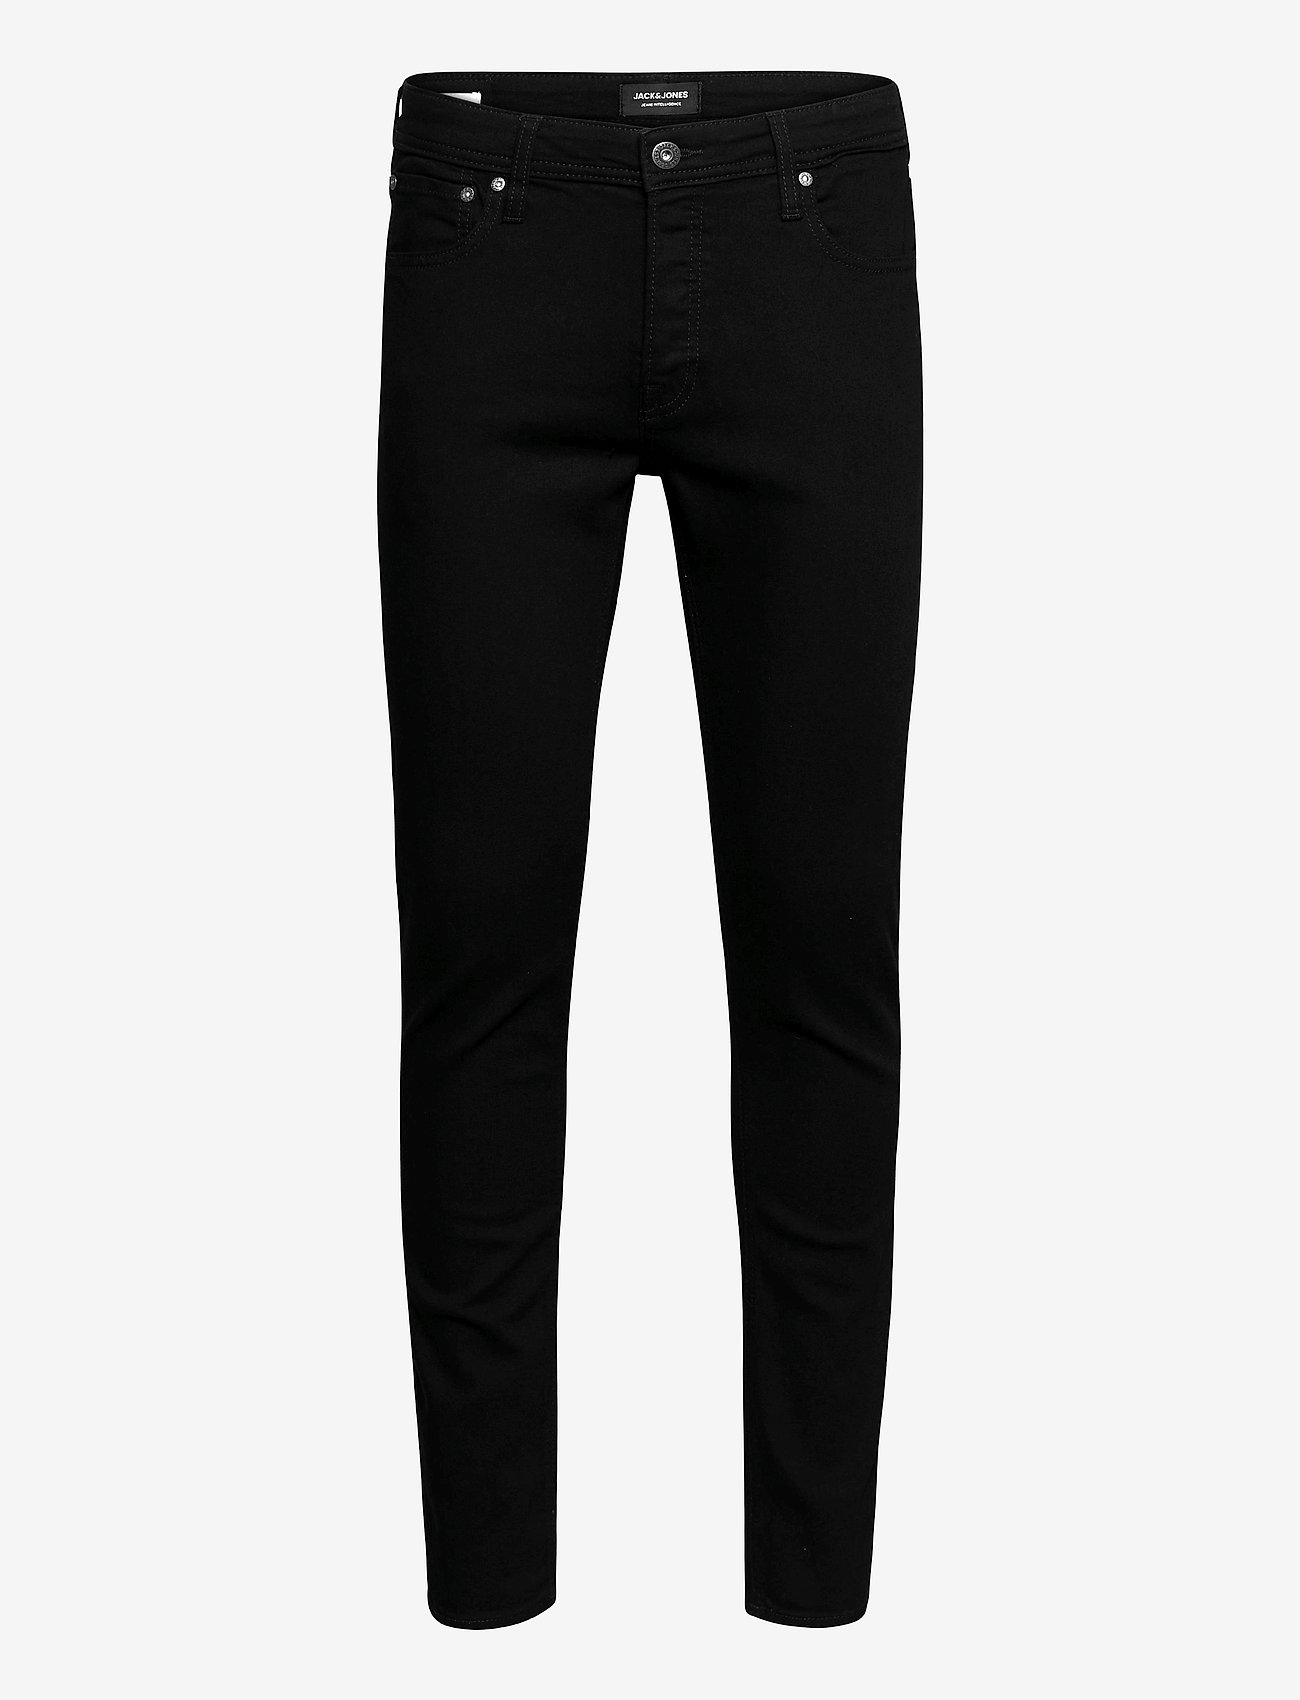 Jack & Jones - JJIGLENN JJORIGINAL AM 816 NOOS - slim jeans - black denim - 0